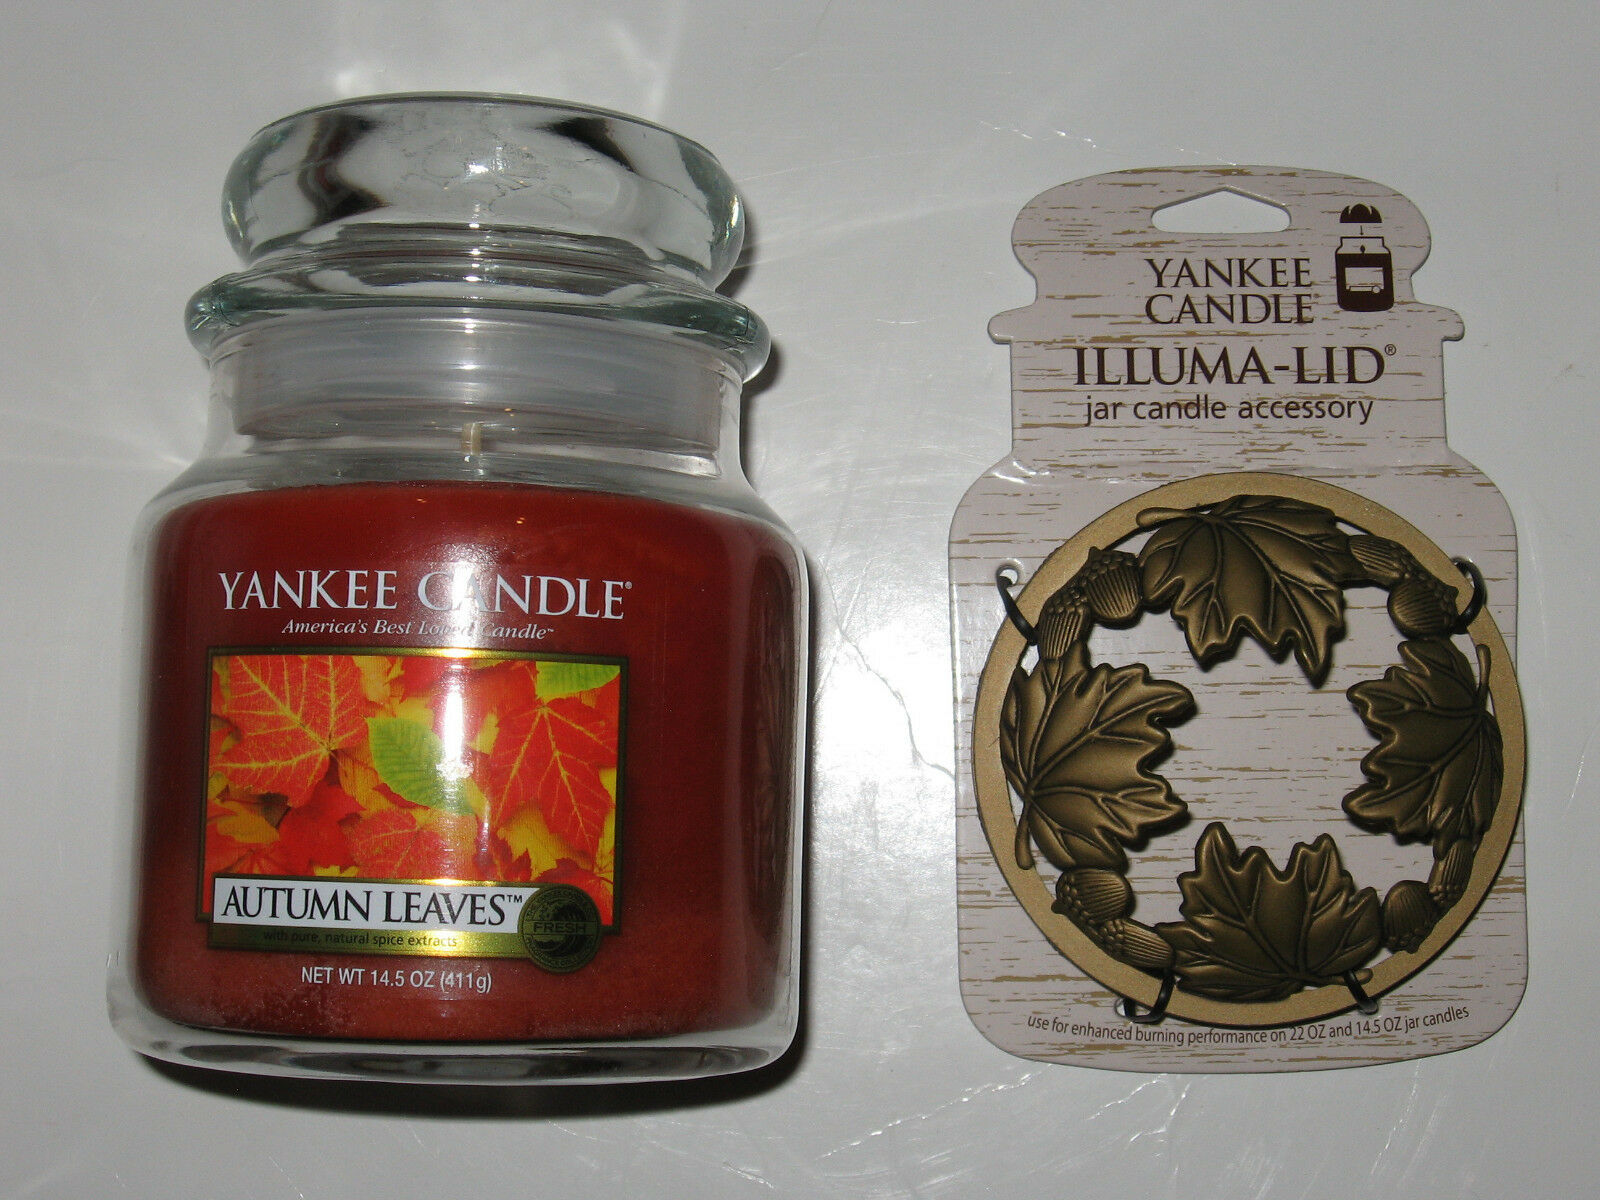 Yankee Candle AUTUMN LEAVES Candle & LEAF ACORNS gold Illuma-Lid Topper FALL SET